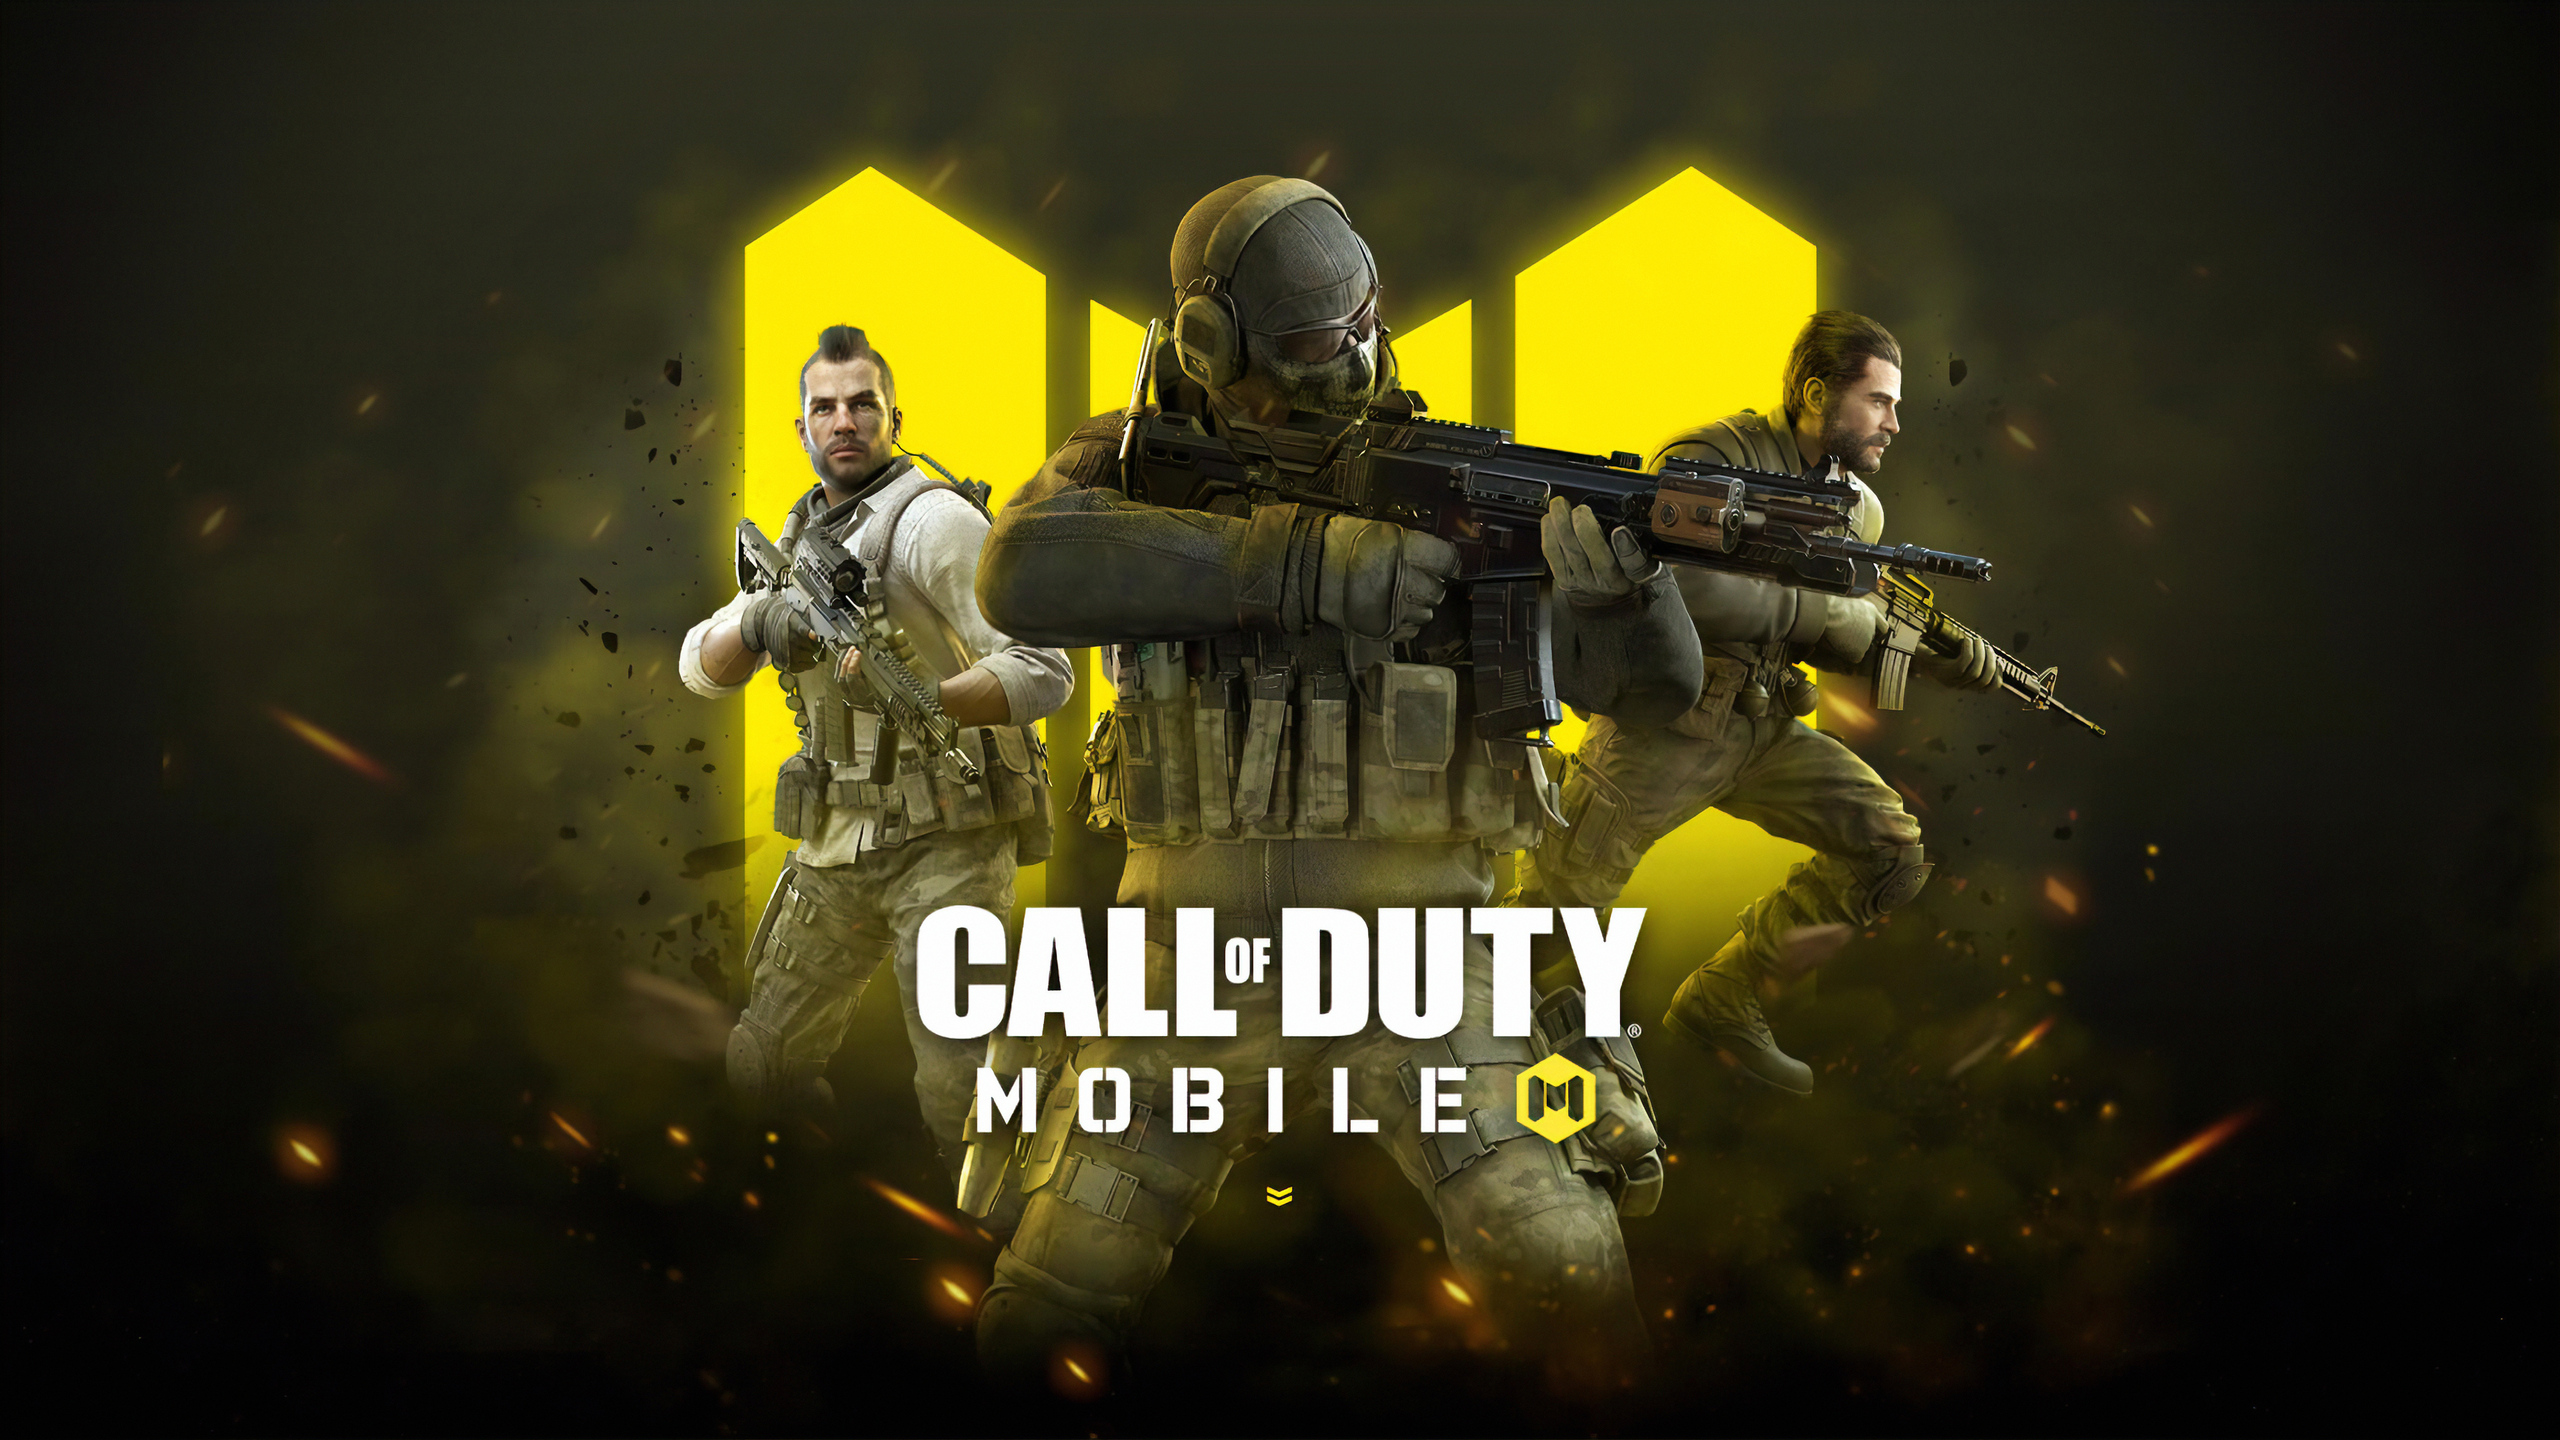 2560x1440 Call Of Duty Mobile 4k 2019 1440p Resolution Hd 4k